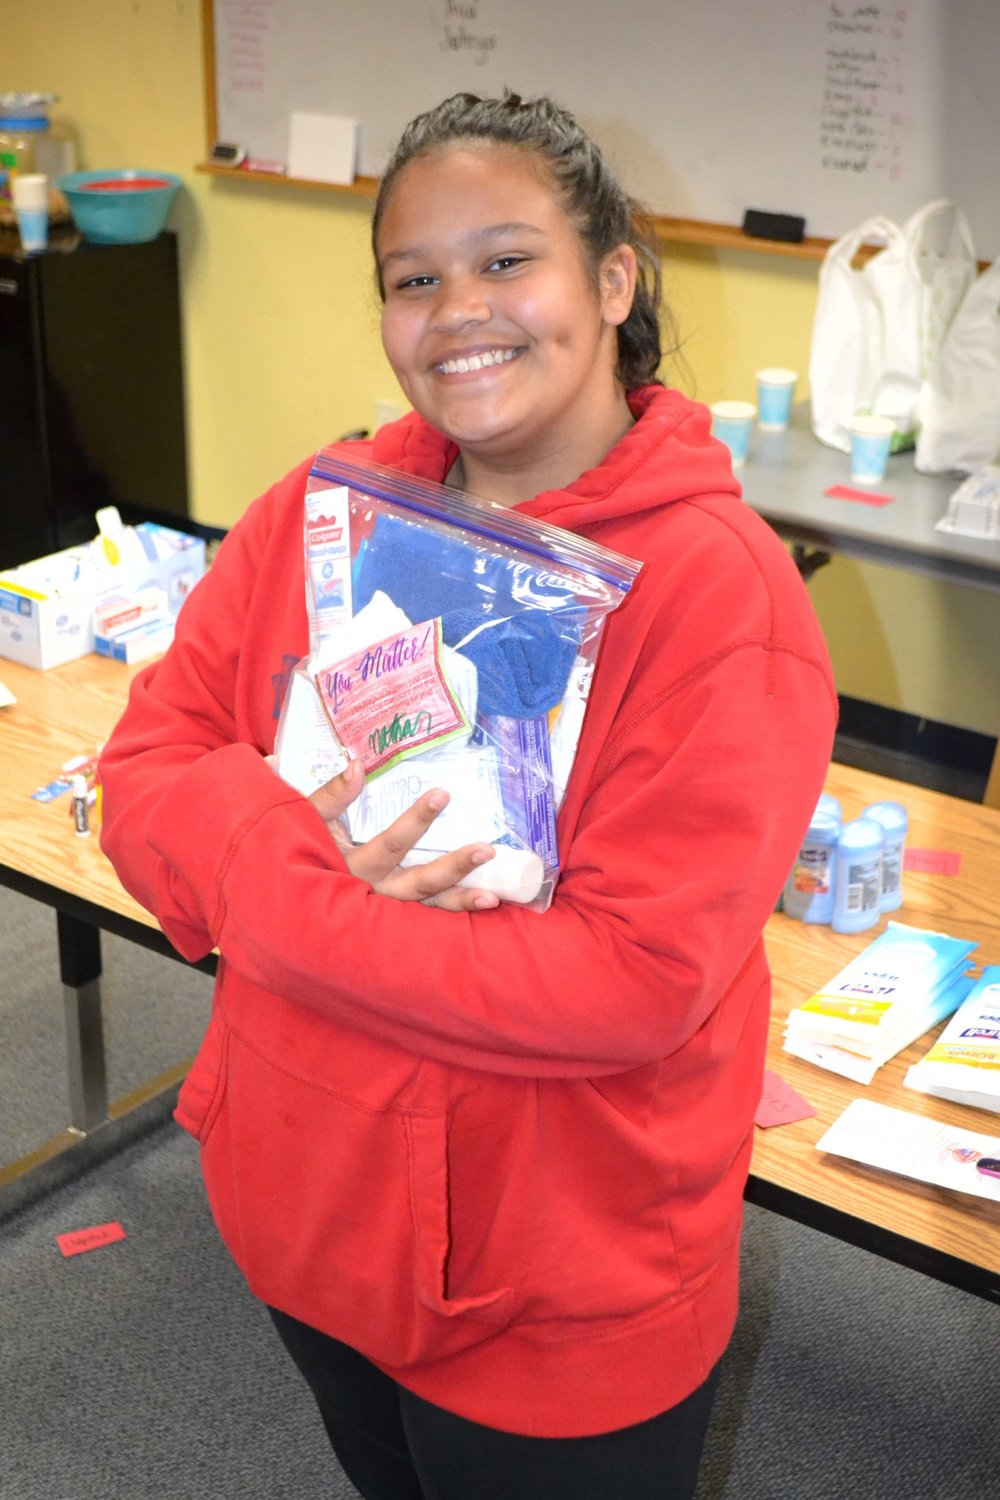 The Final Product! - This student and her Blessing Bag are ready to bring a little bit of joy to someone in need.